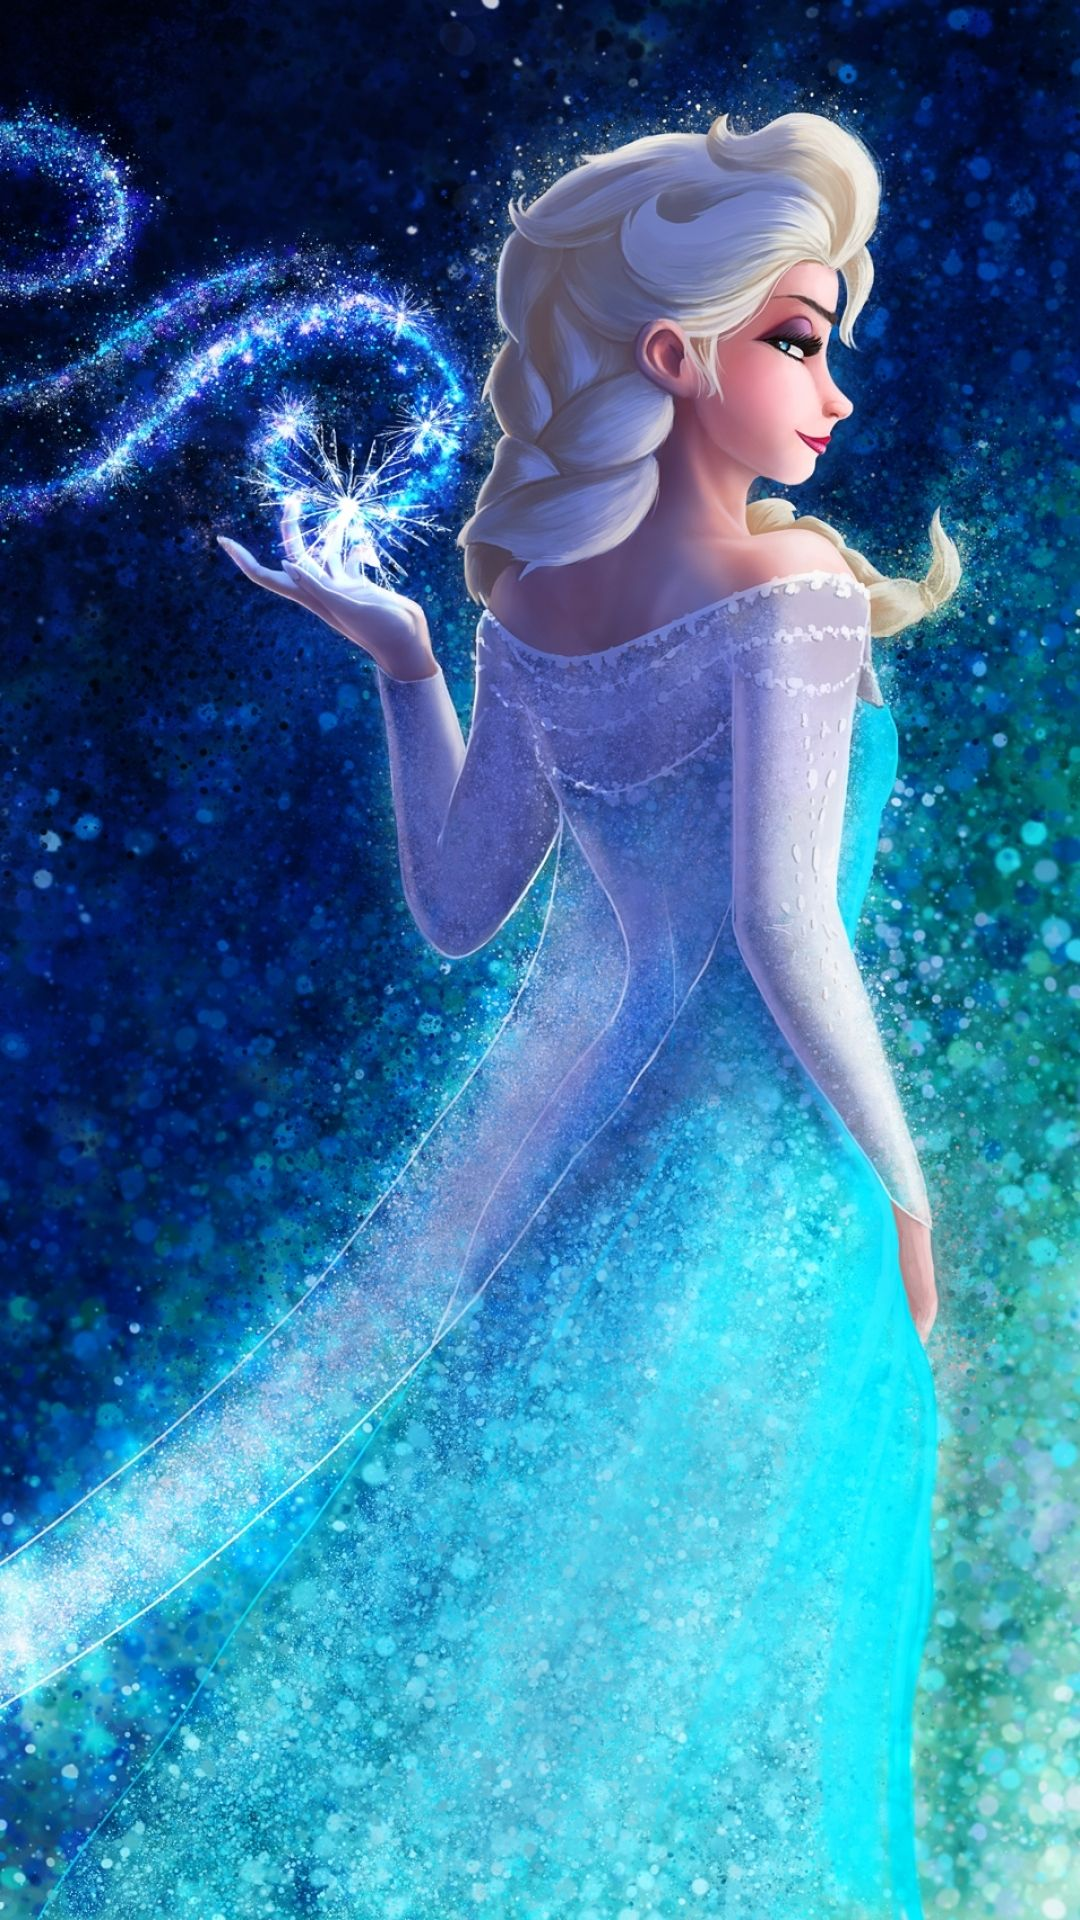 Frozen wallpapers top free frozen backgrounds - Frozen cartoon wallpaper ...